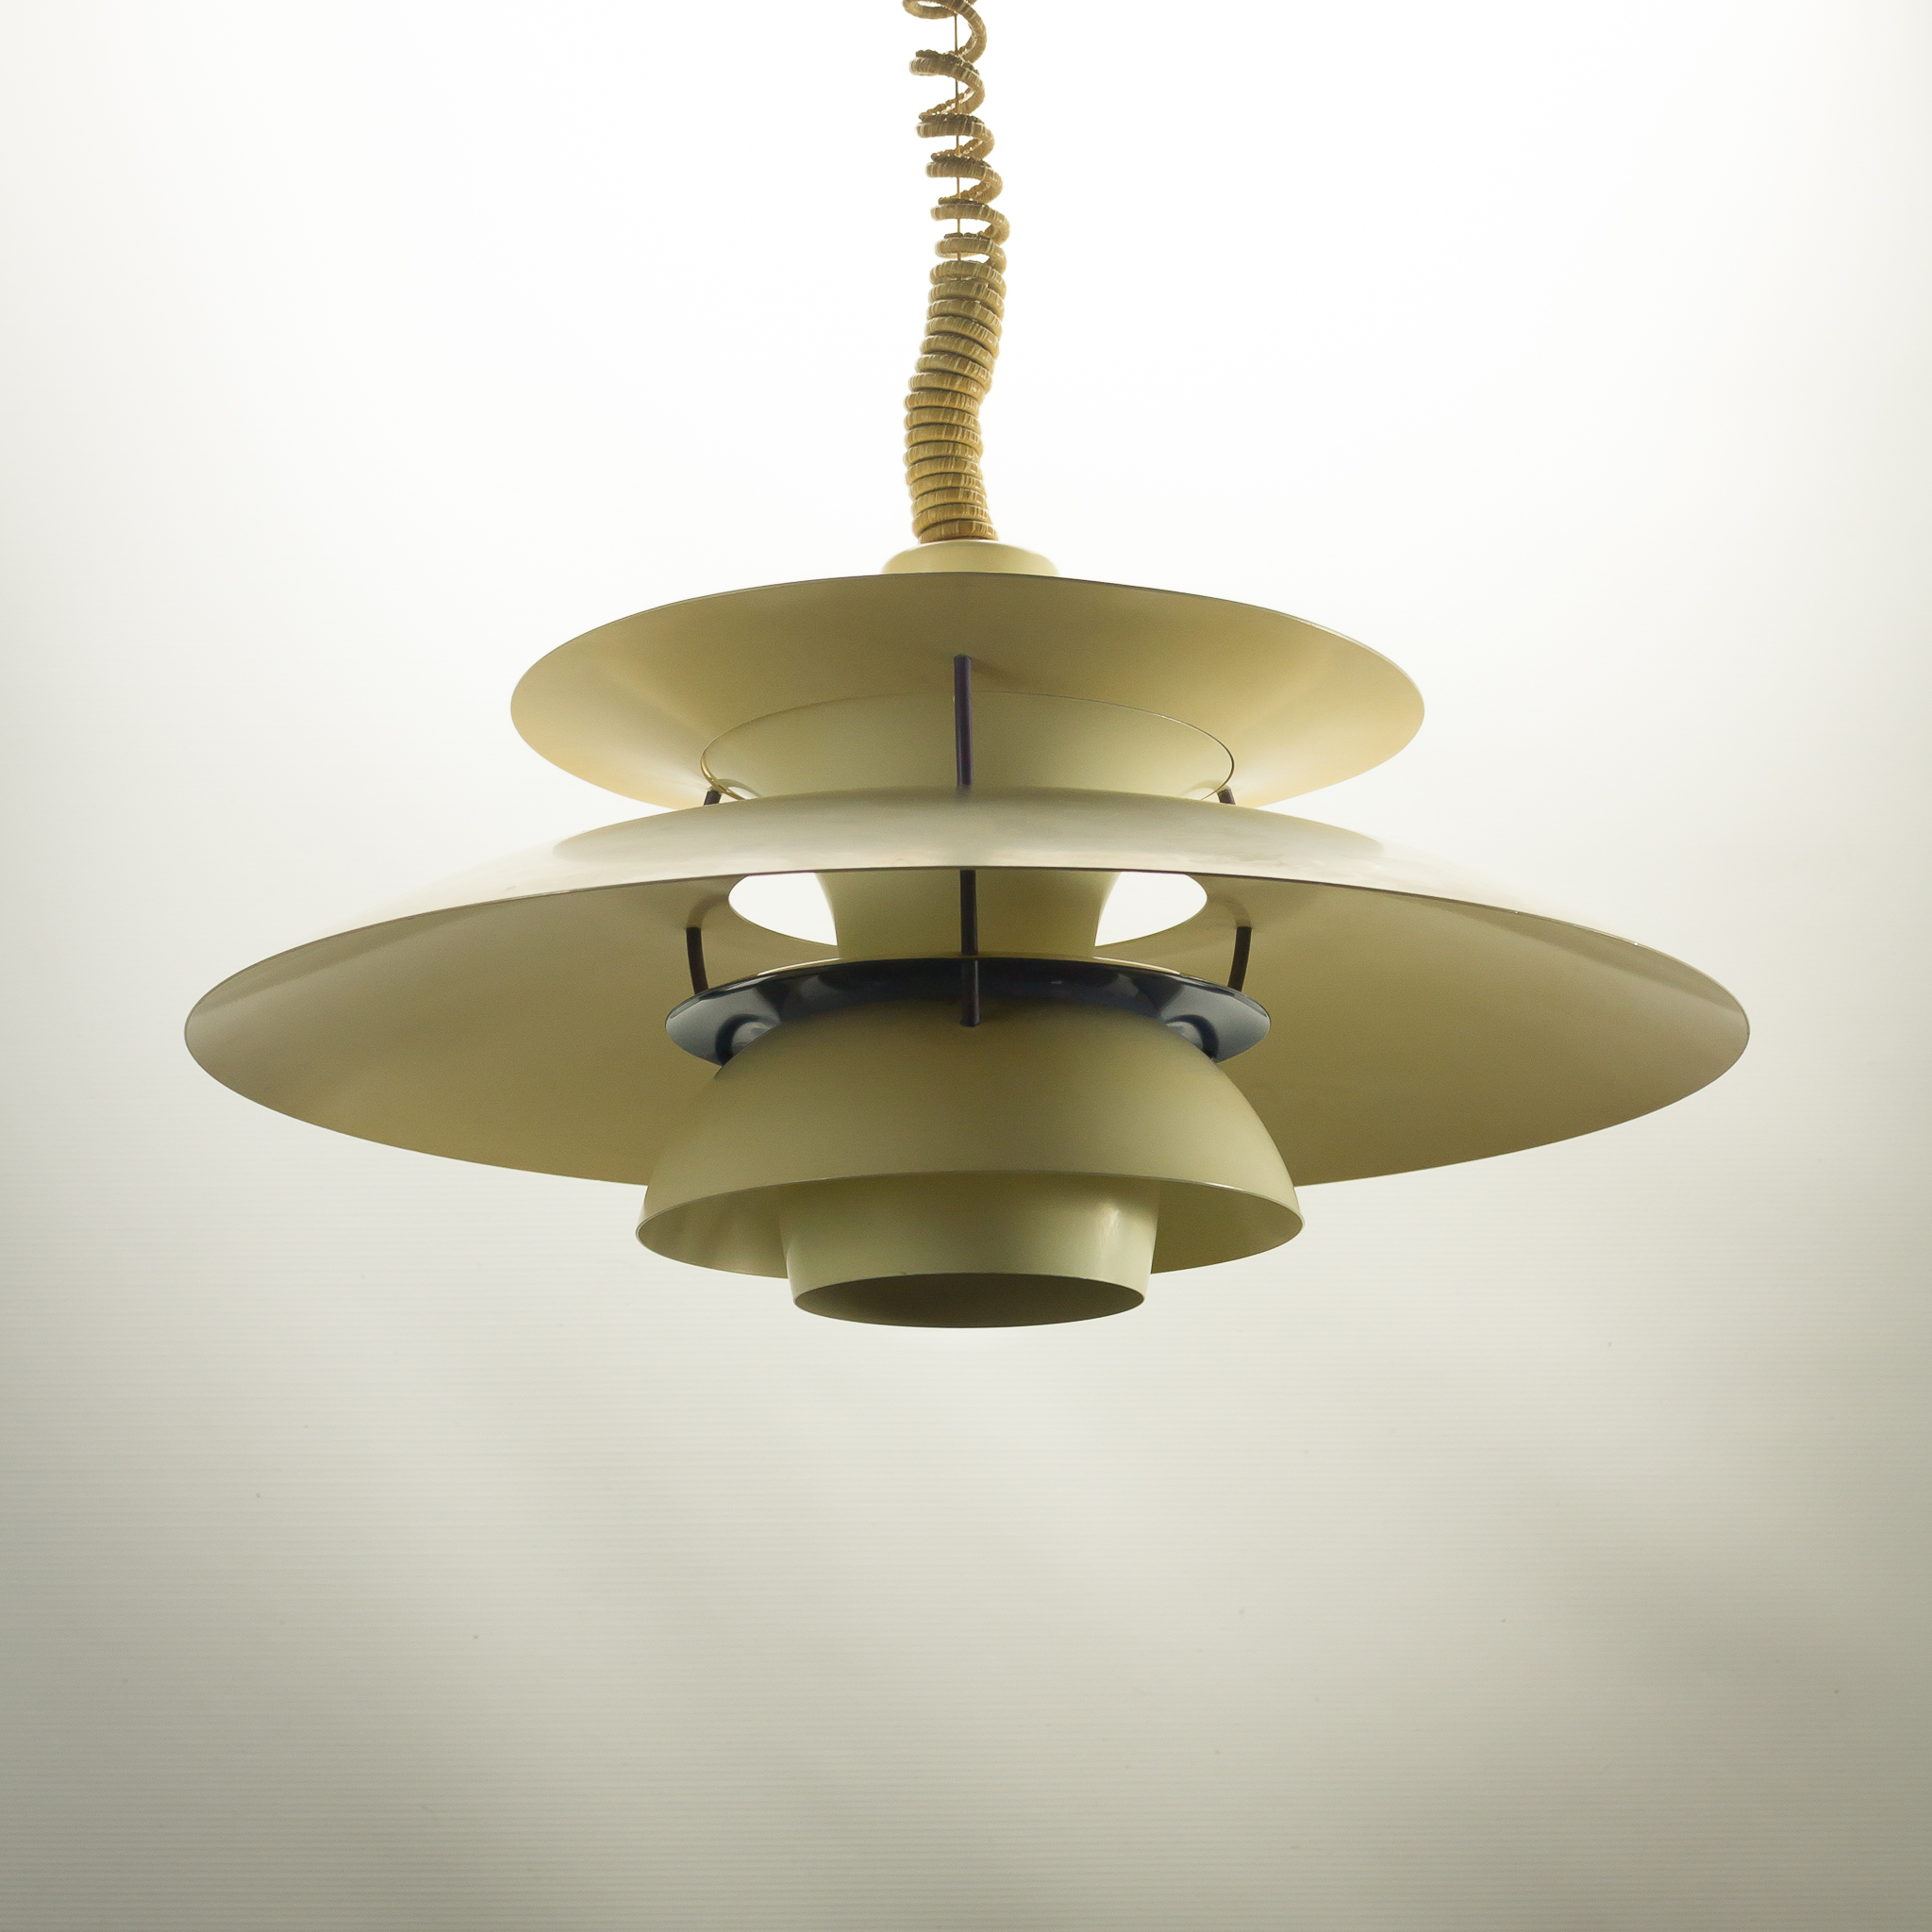 Ph 5 60 S Poul Henningsen Ph 5 Lamp By Louis Poulsen Barbmama